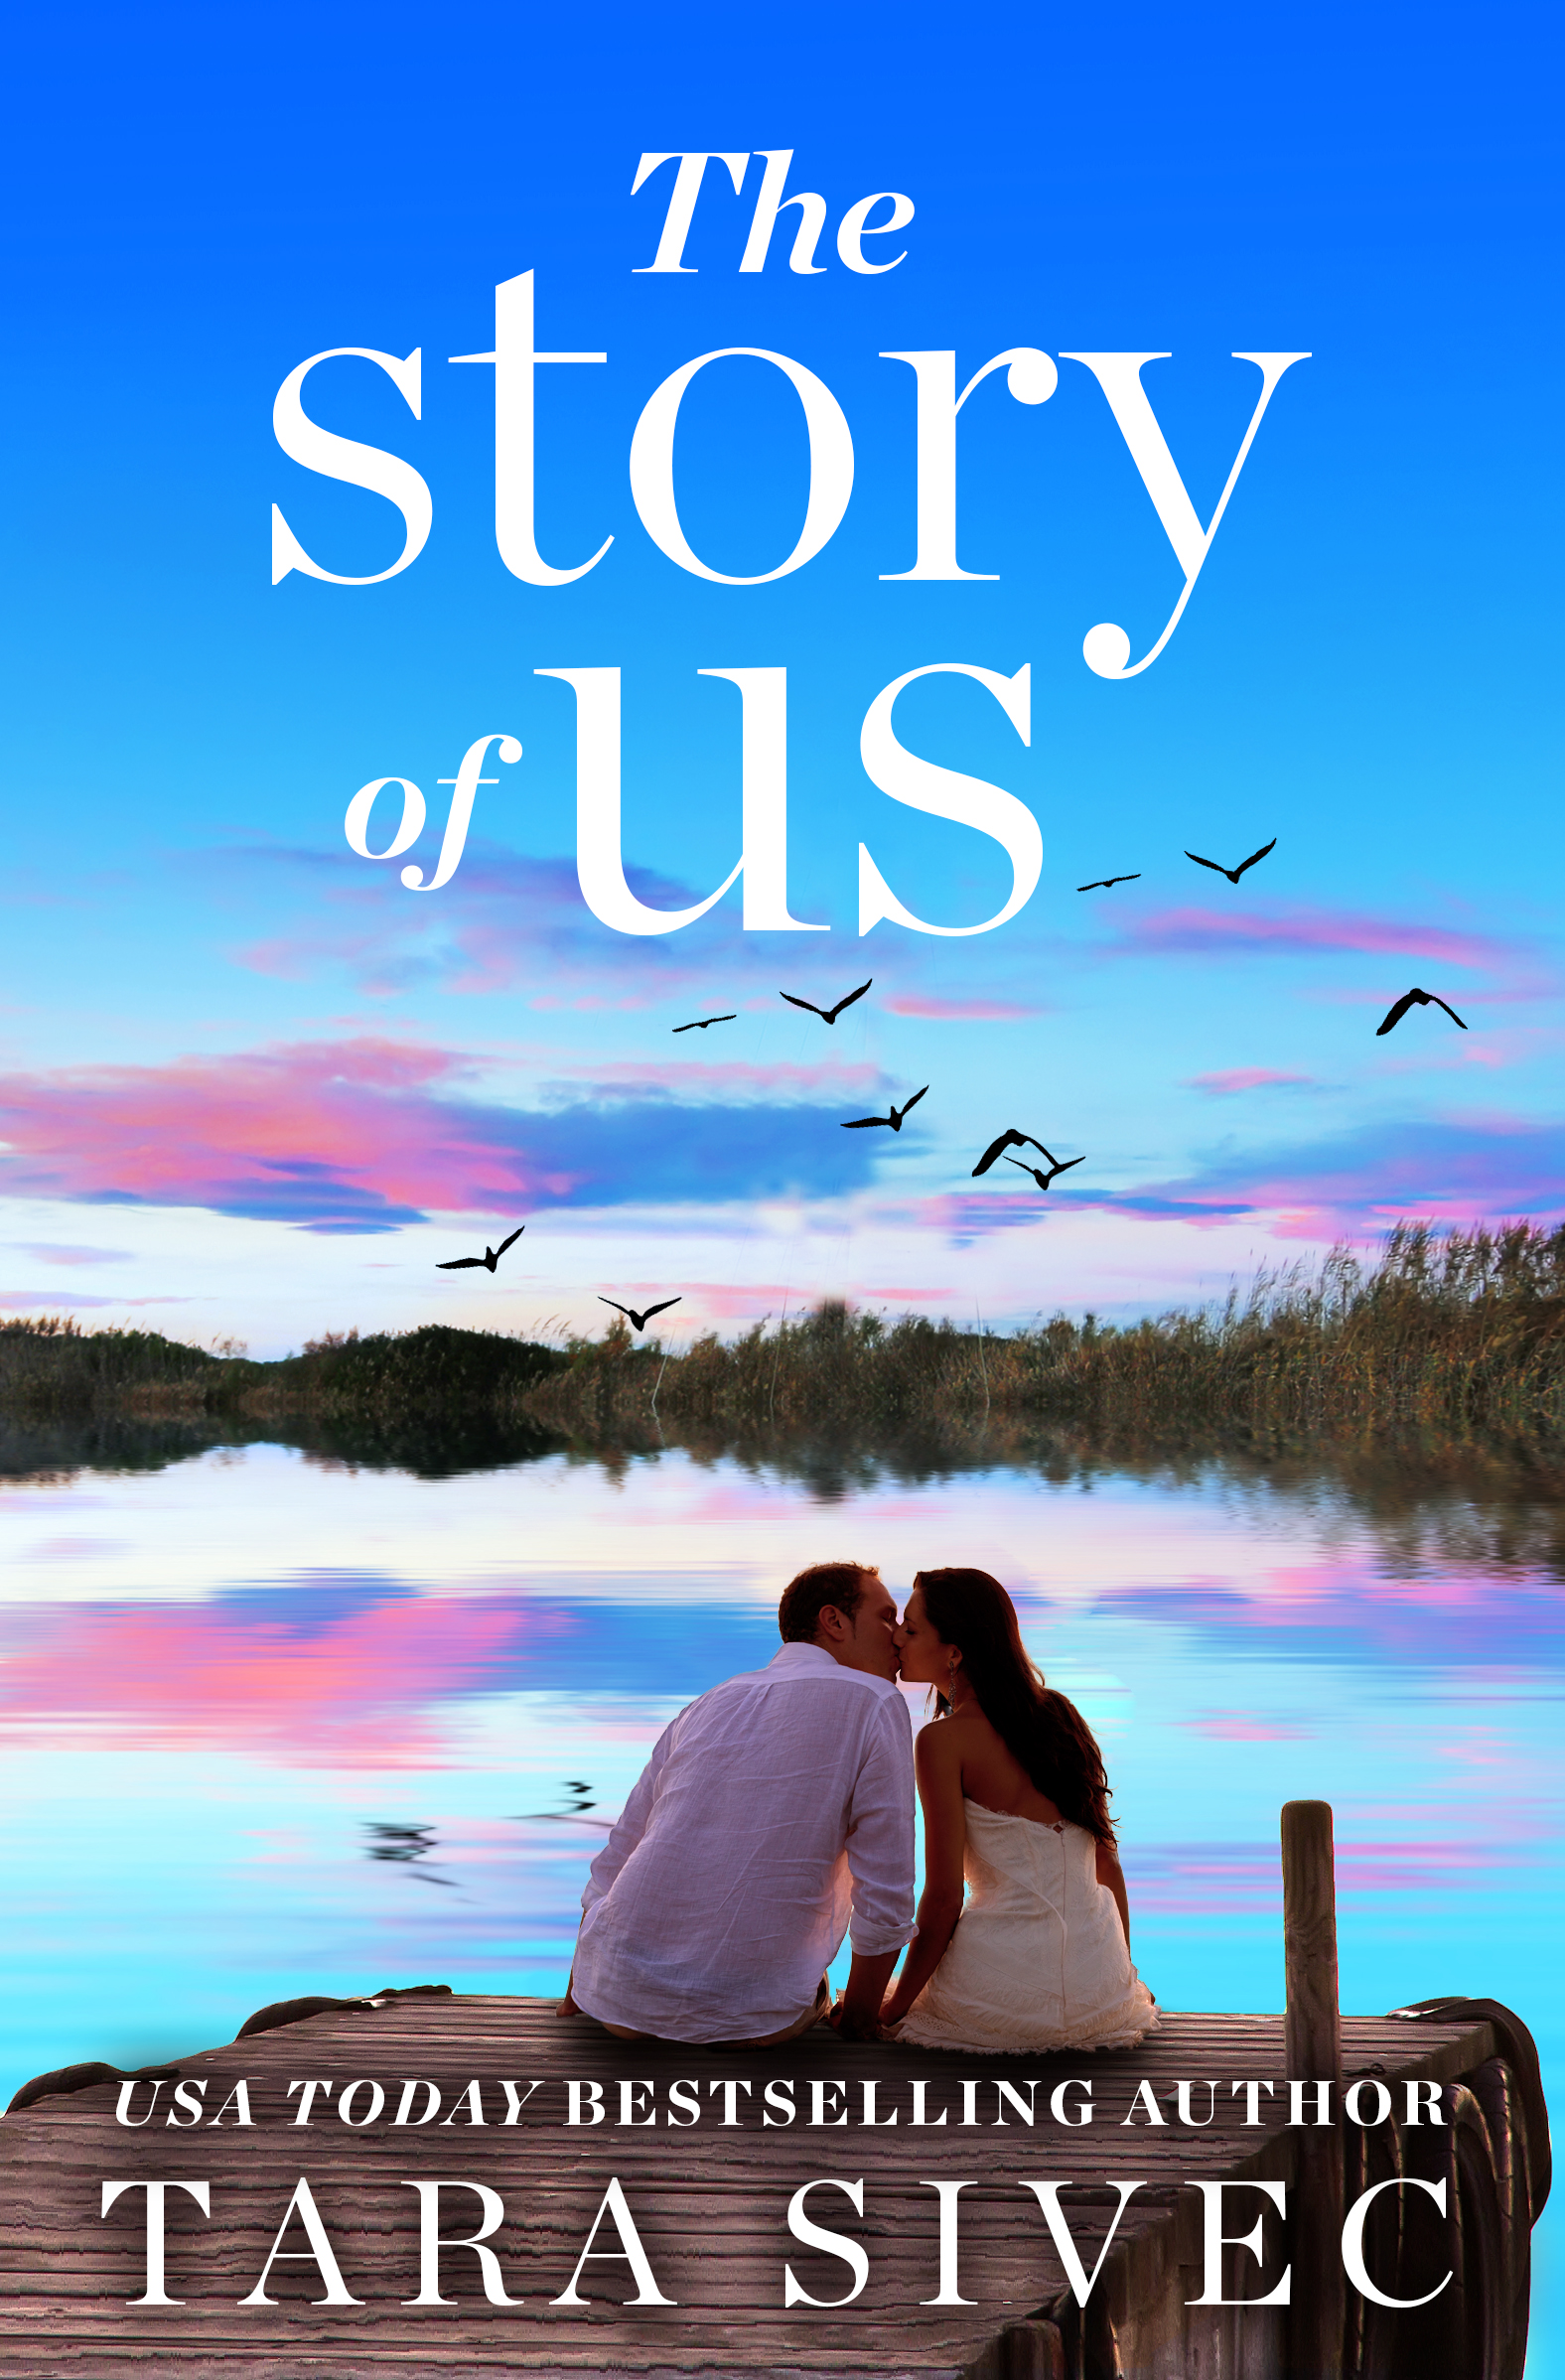 Tara Sivec's The Story of Us Cover Reveal